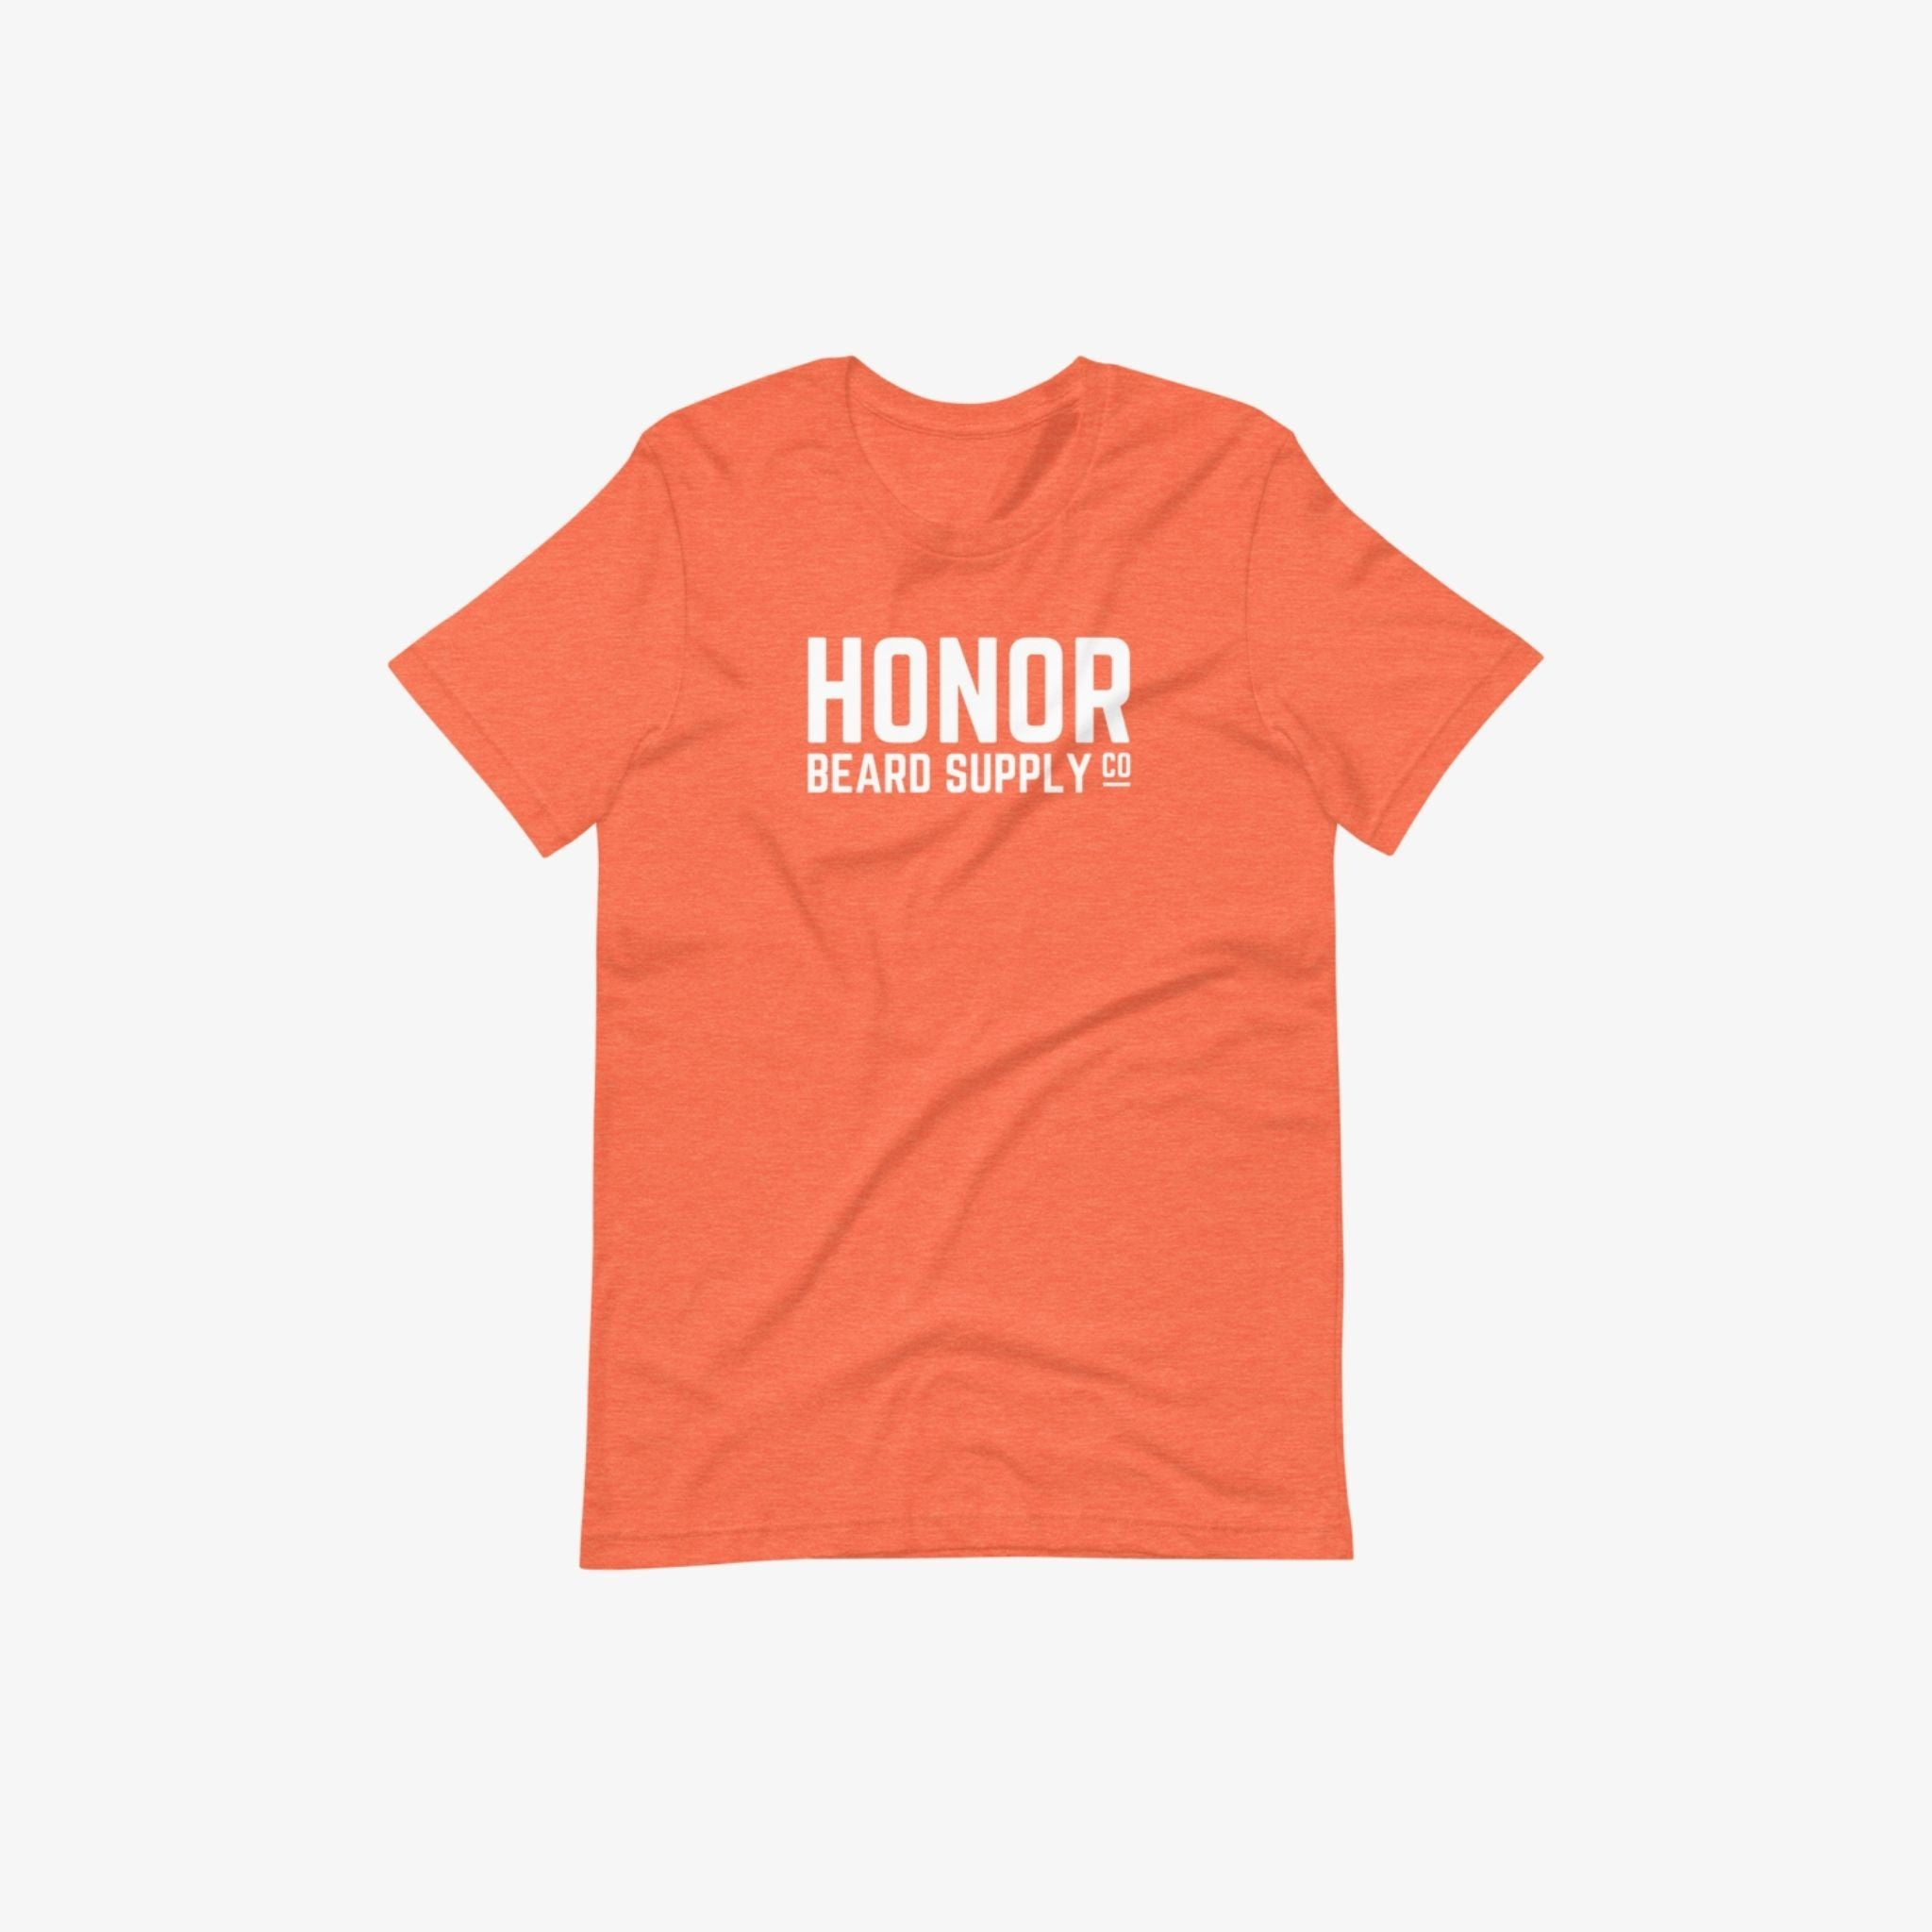 Honor's supply company tee in orange and on a white background